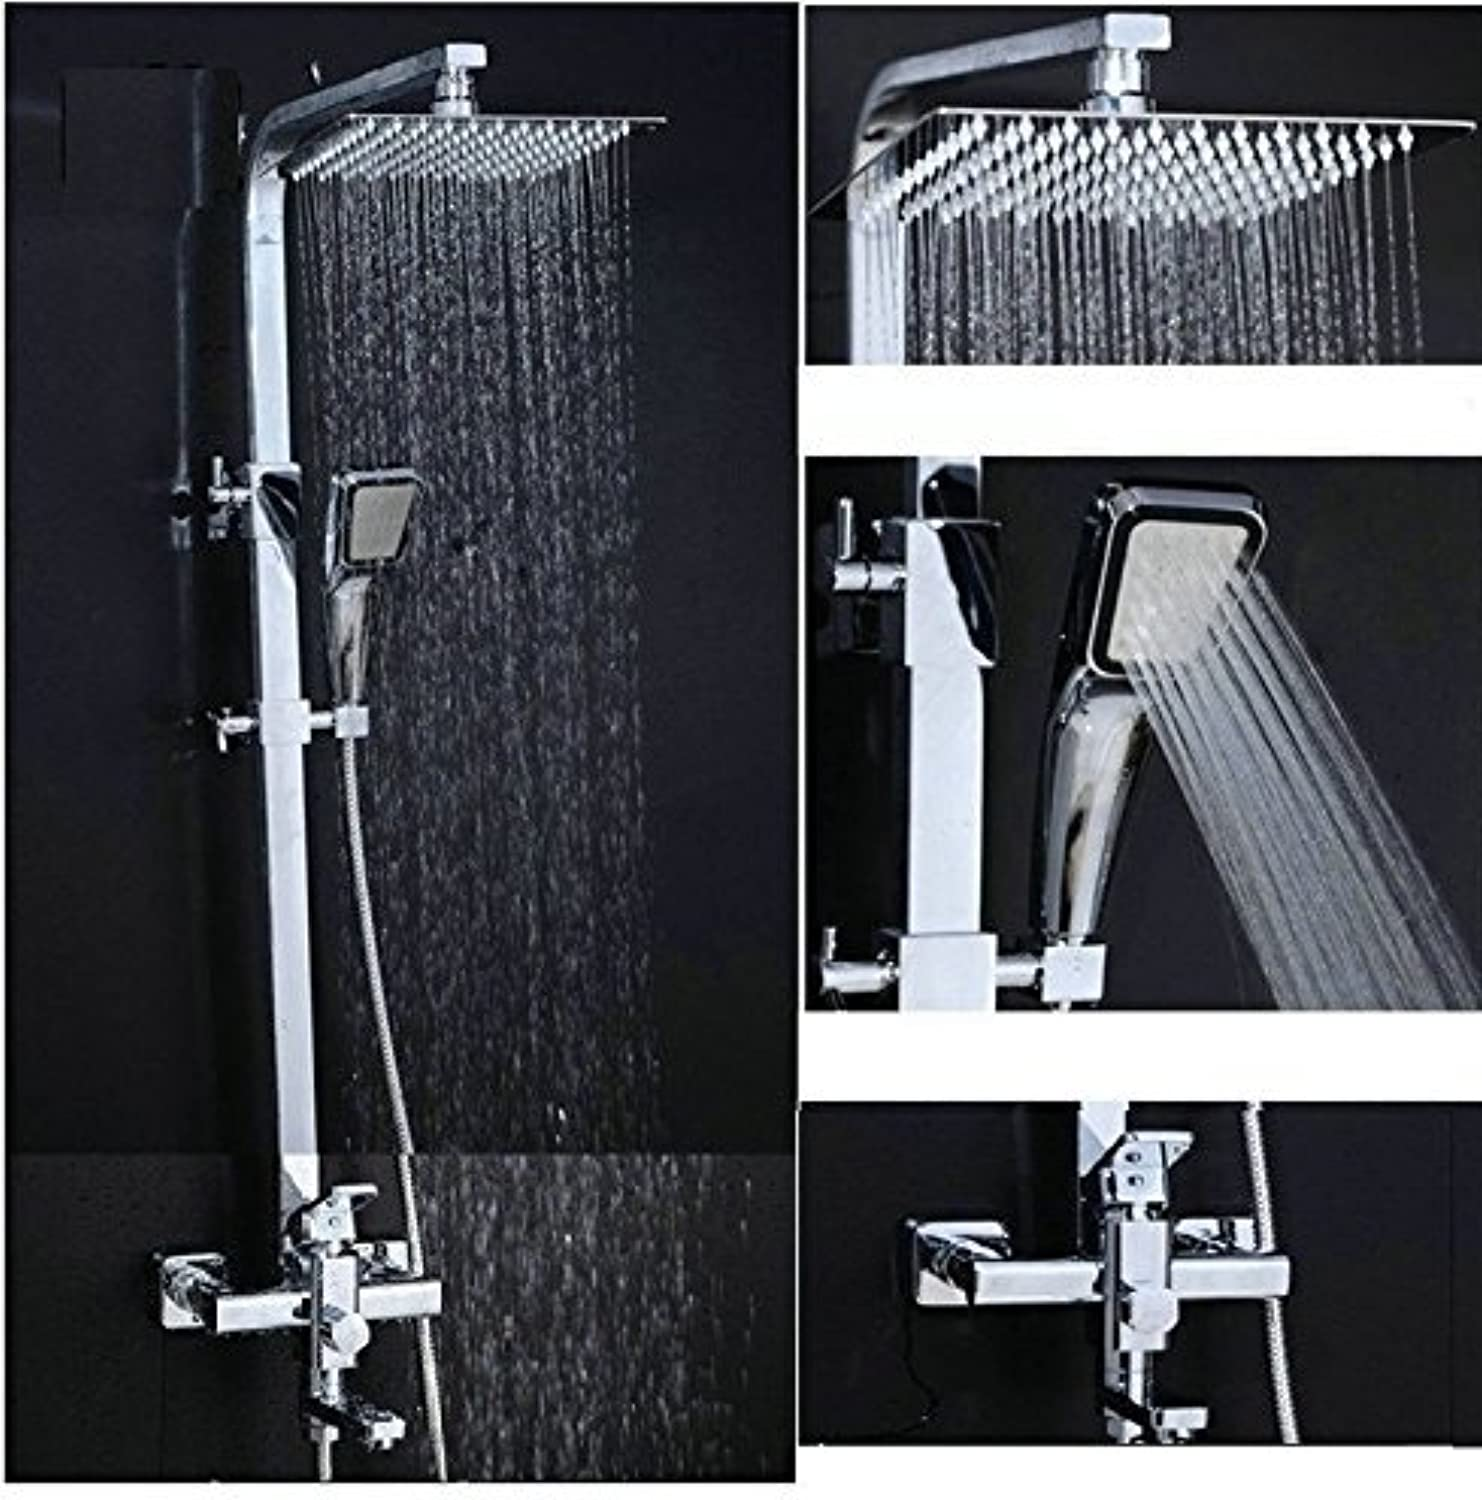 The Pure Copper Place Shower Combination Super Booster Shower Function Shower Sprinkler